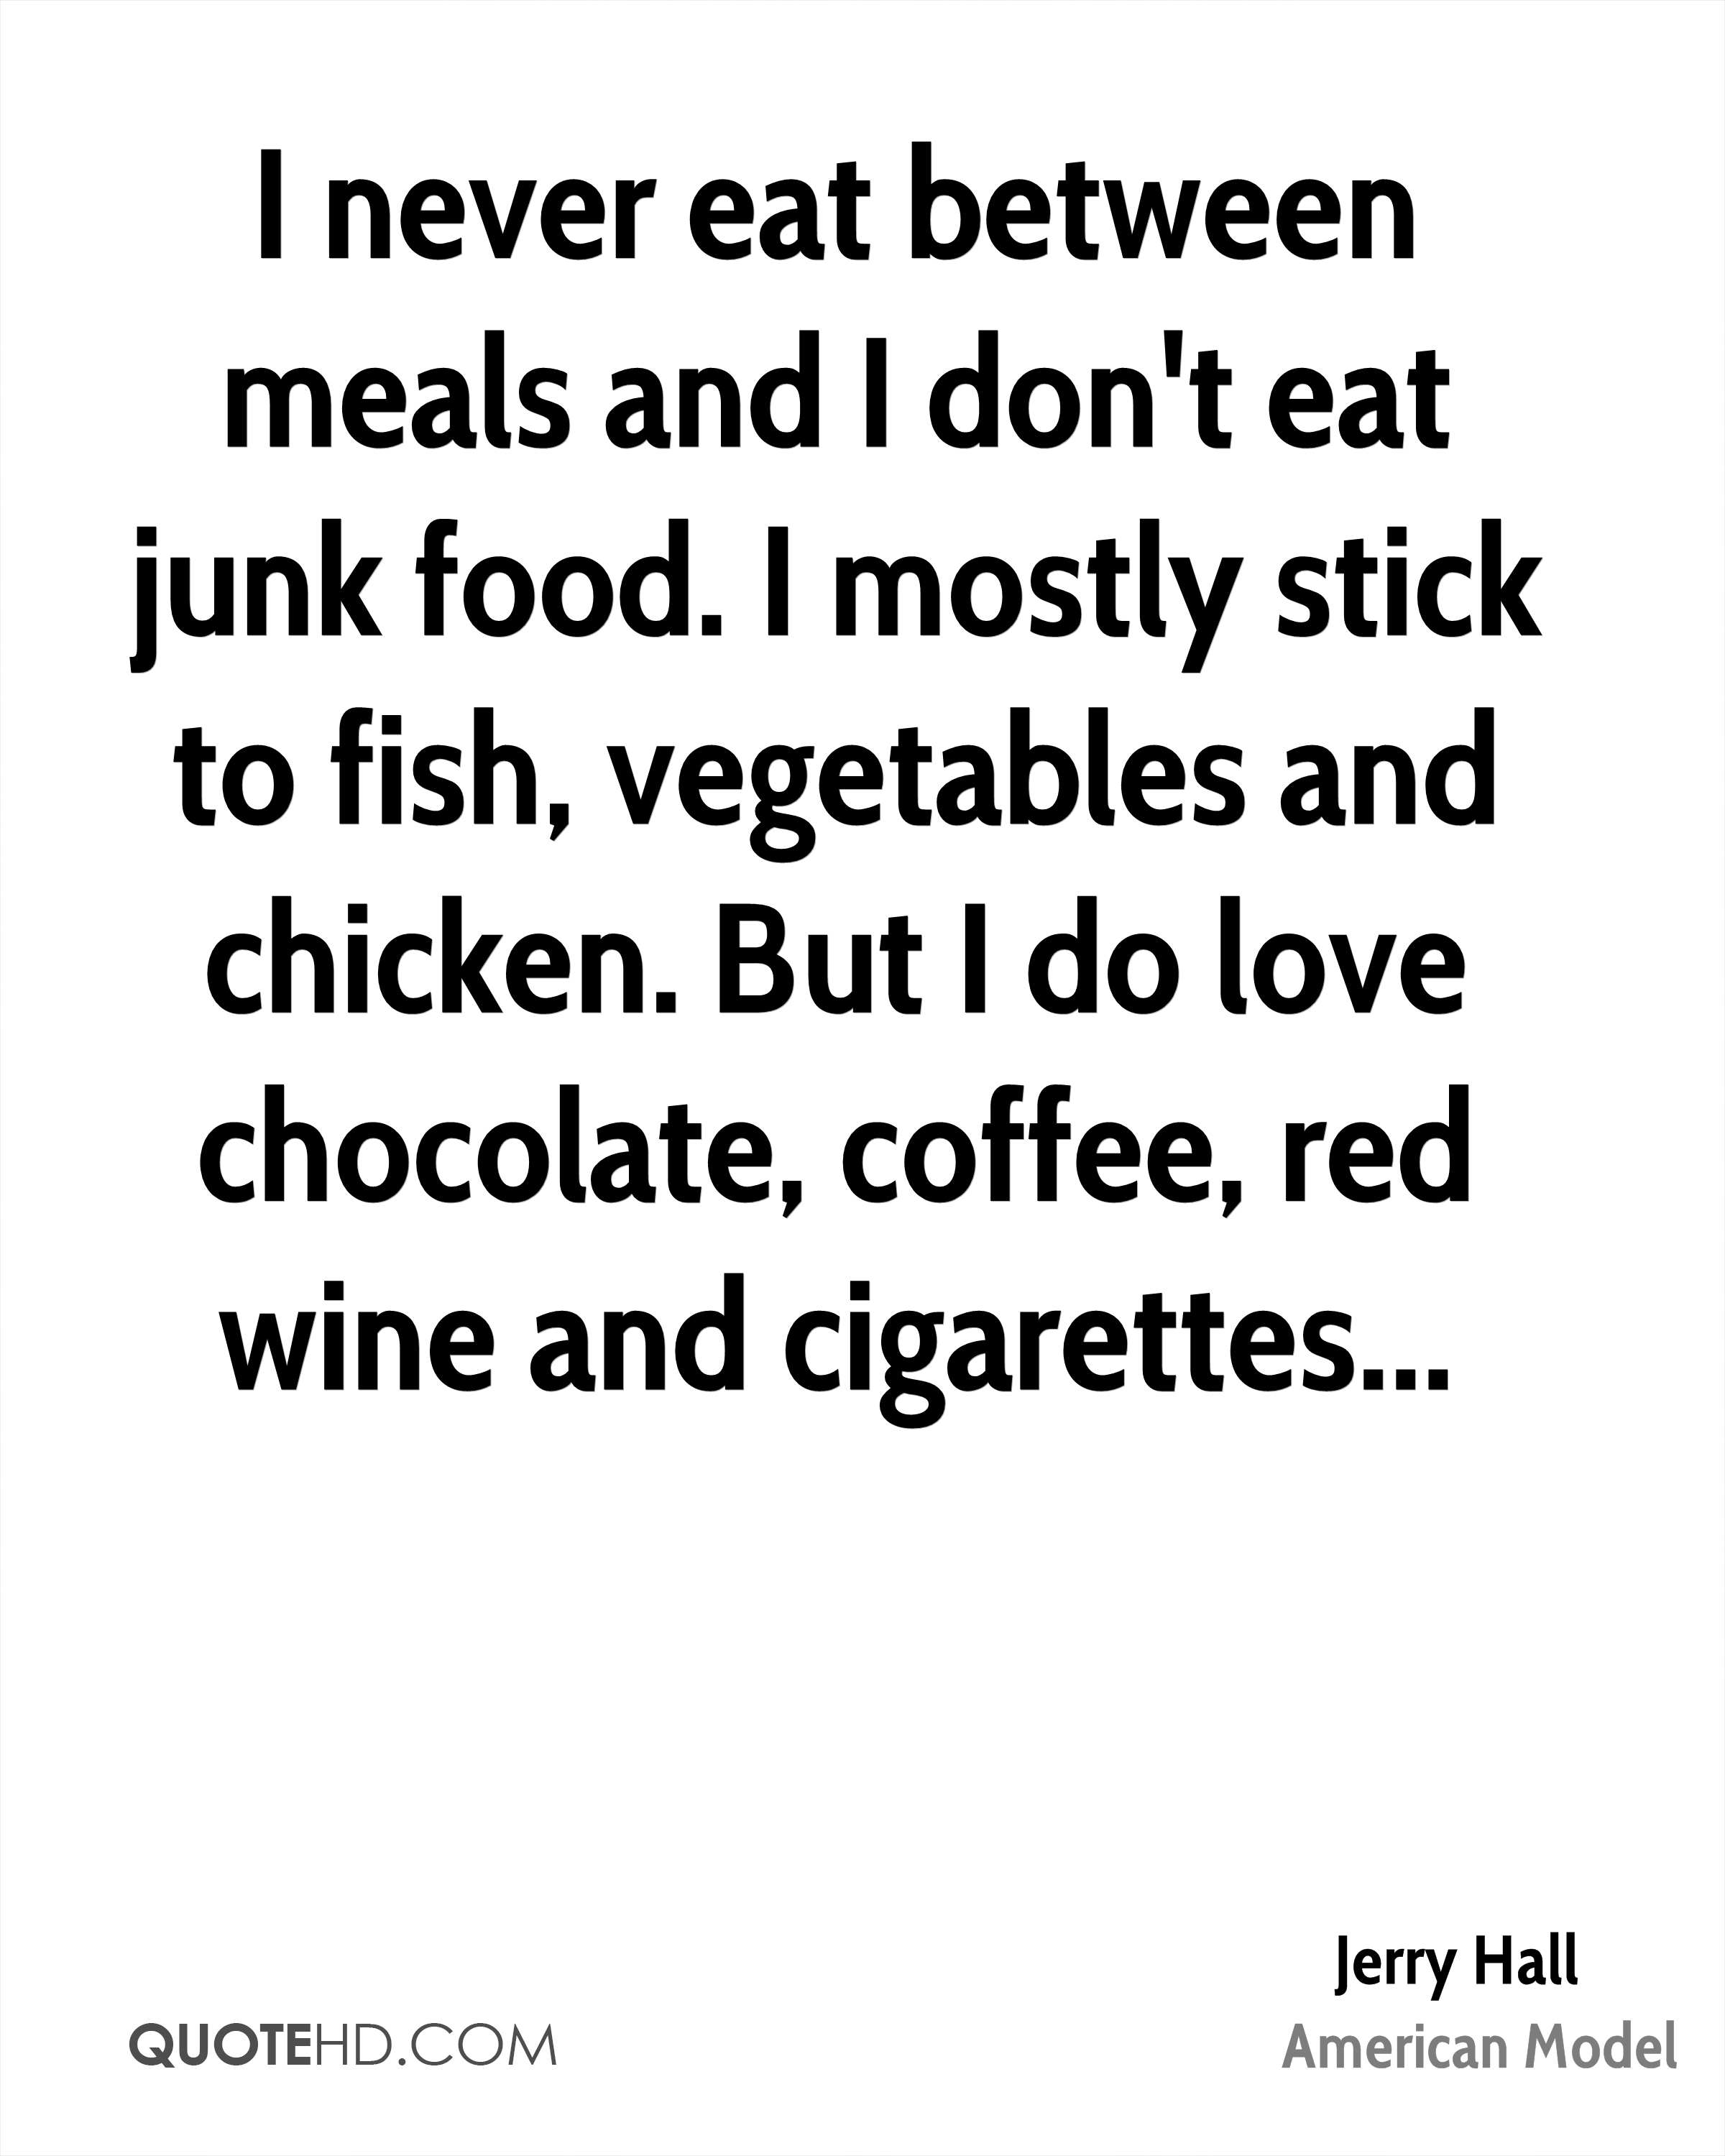 I never eat between meals and I don't eat junk food. I mostly stick to fish, vegetables and chicken. But I do love chocolate, coffee, red wine and cigarettes...